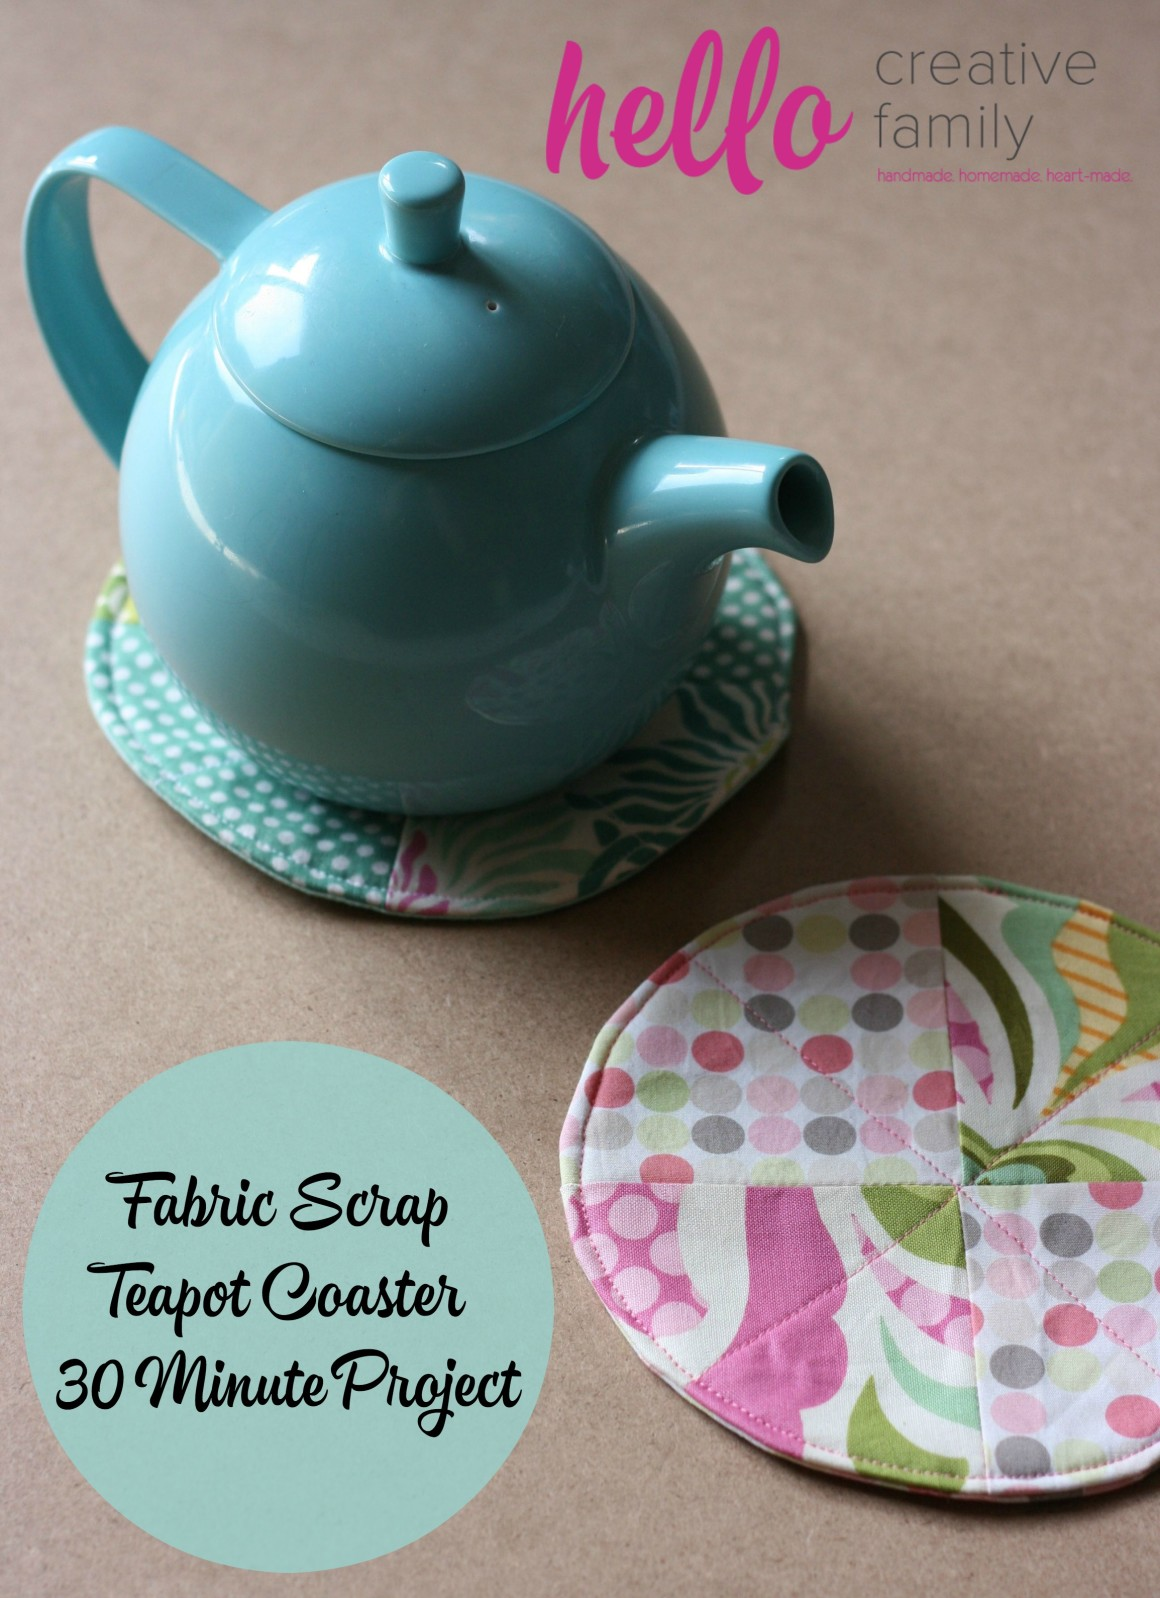 Fabric Scrap Teacup Coaster Tutorial. A great 30 minute project to use up your fabric scraps. Handmade Homemade Heartmade